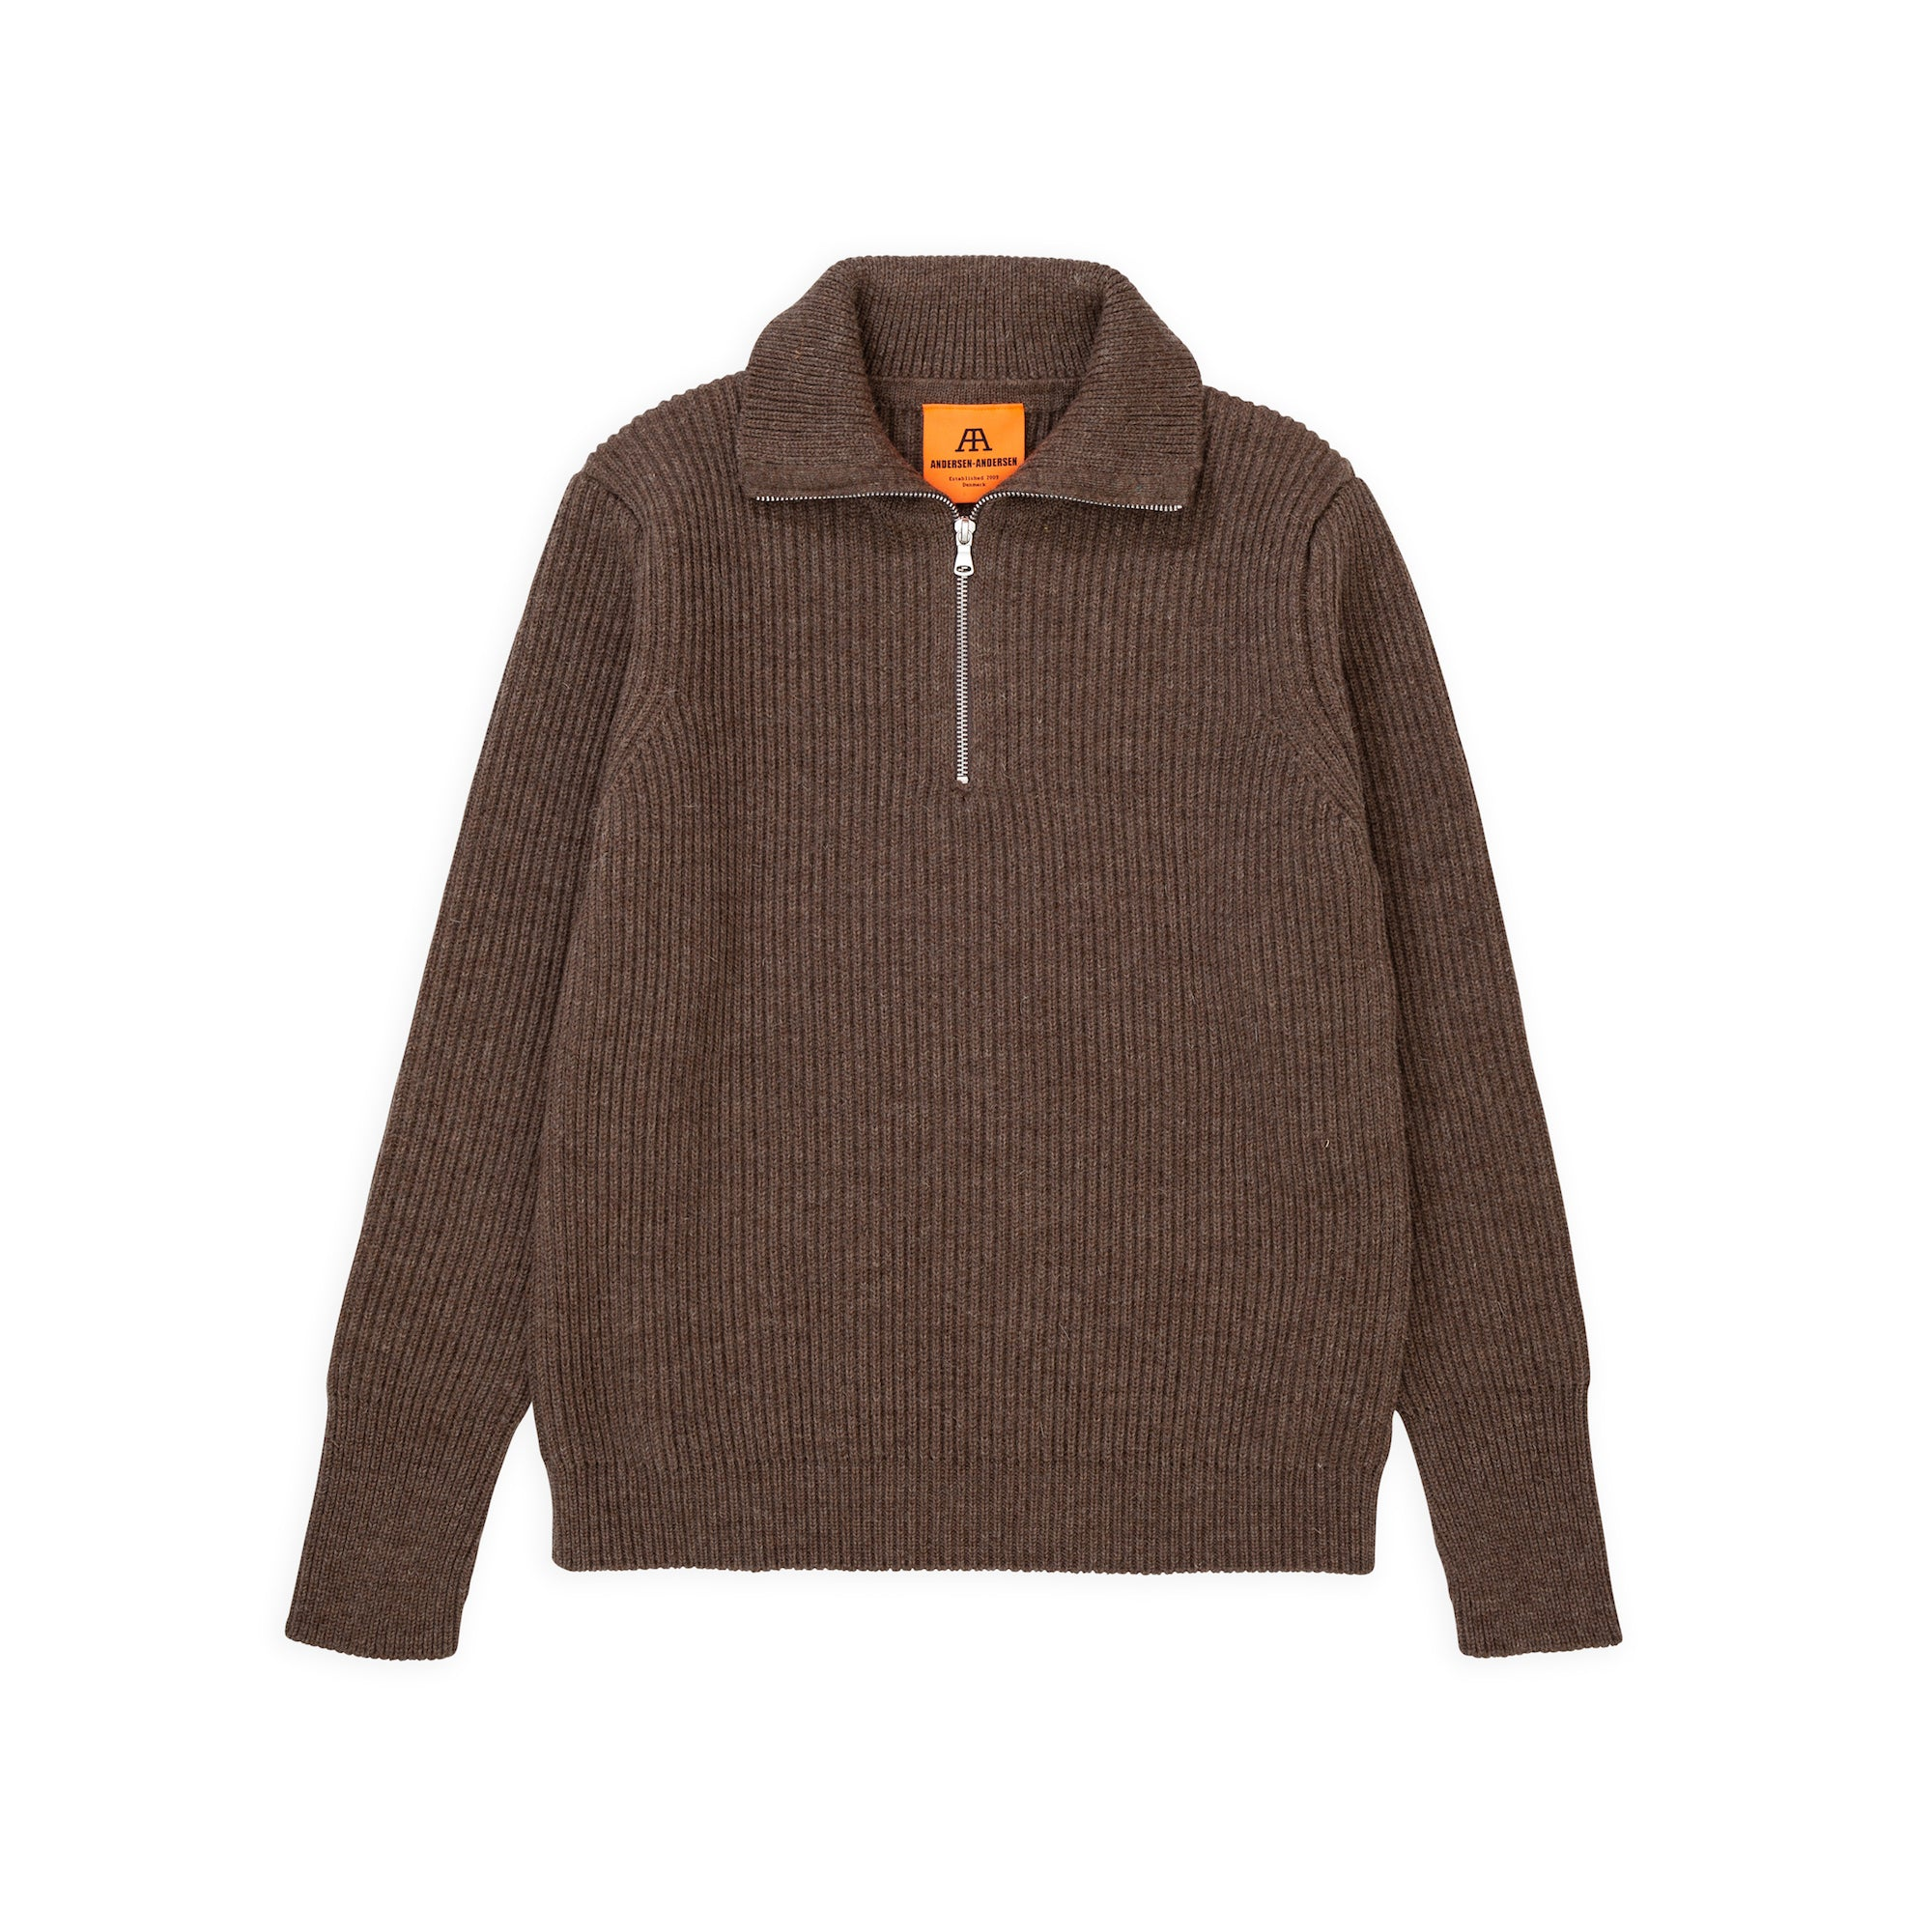 Navy Half-Zip - Natural Taupe